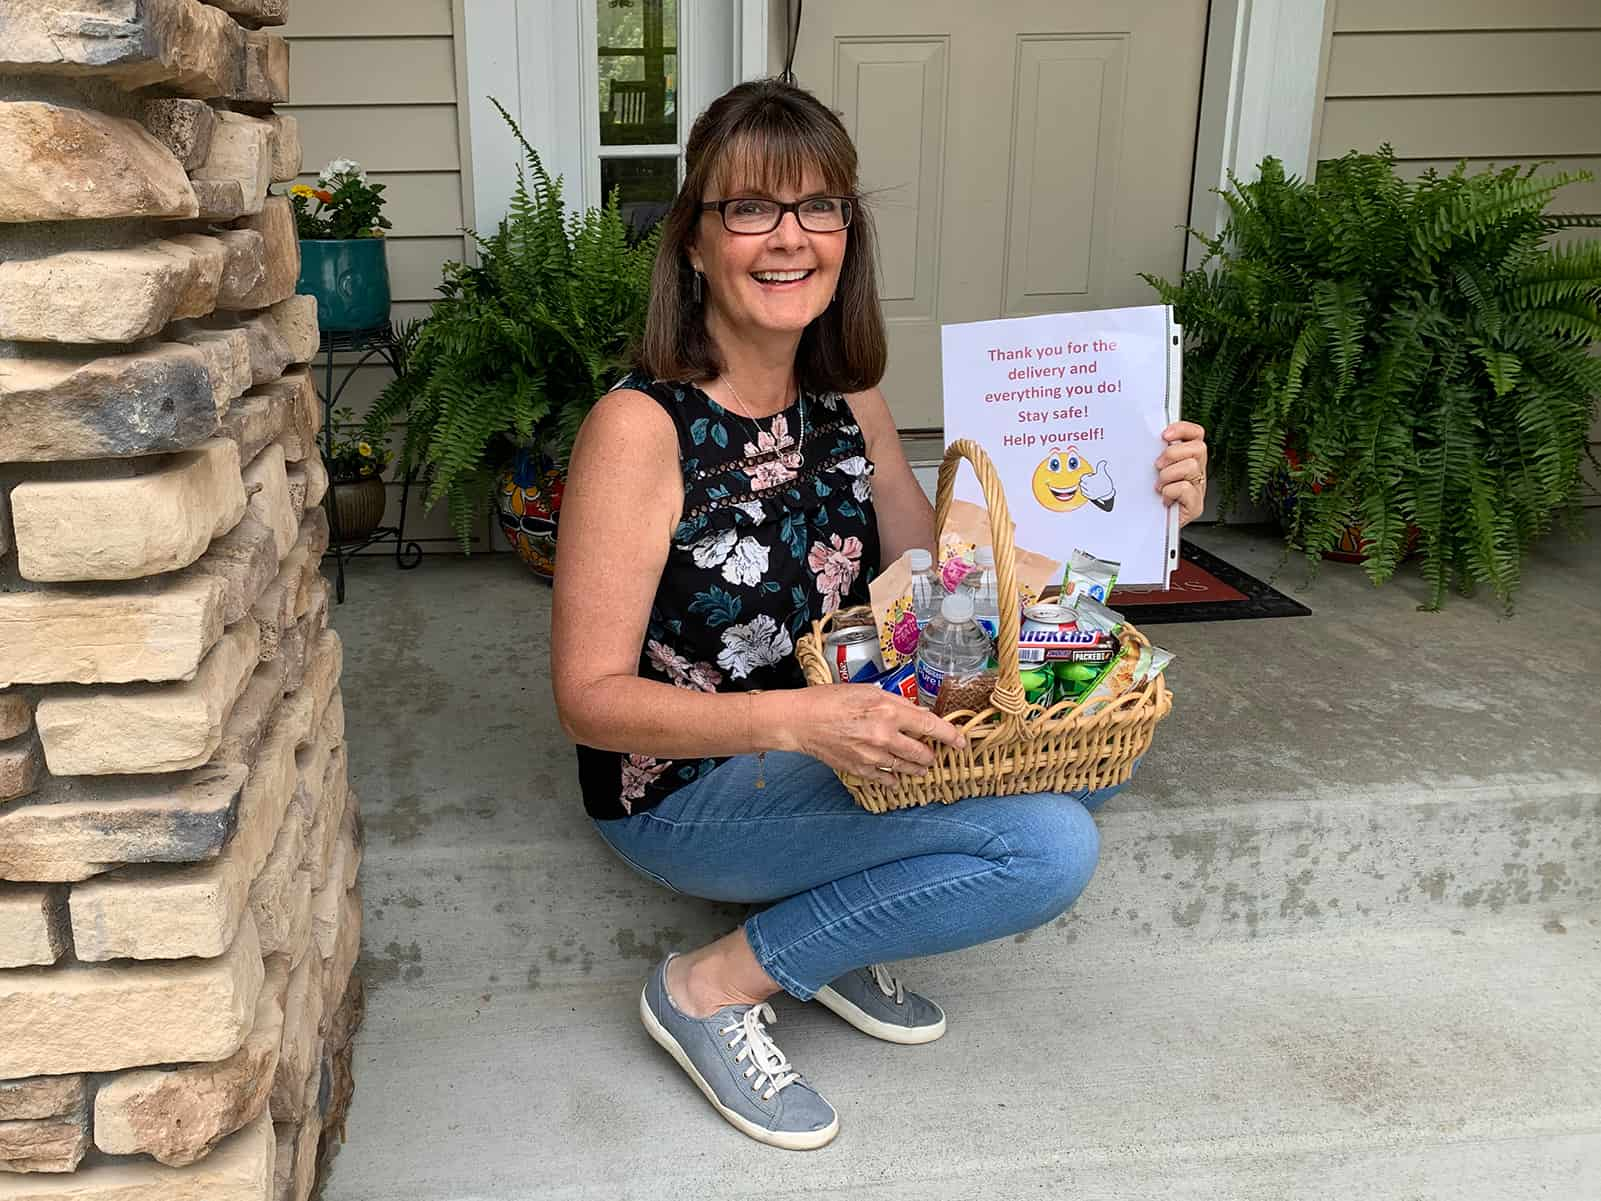 Lisa poses with one of her care baskets